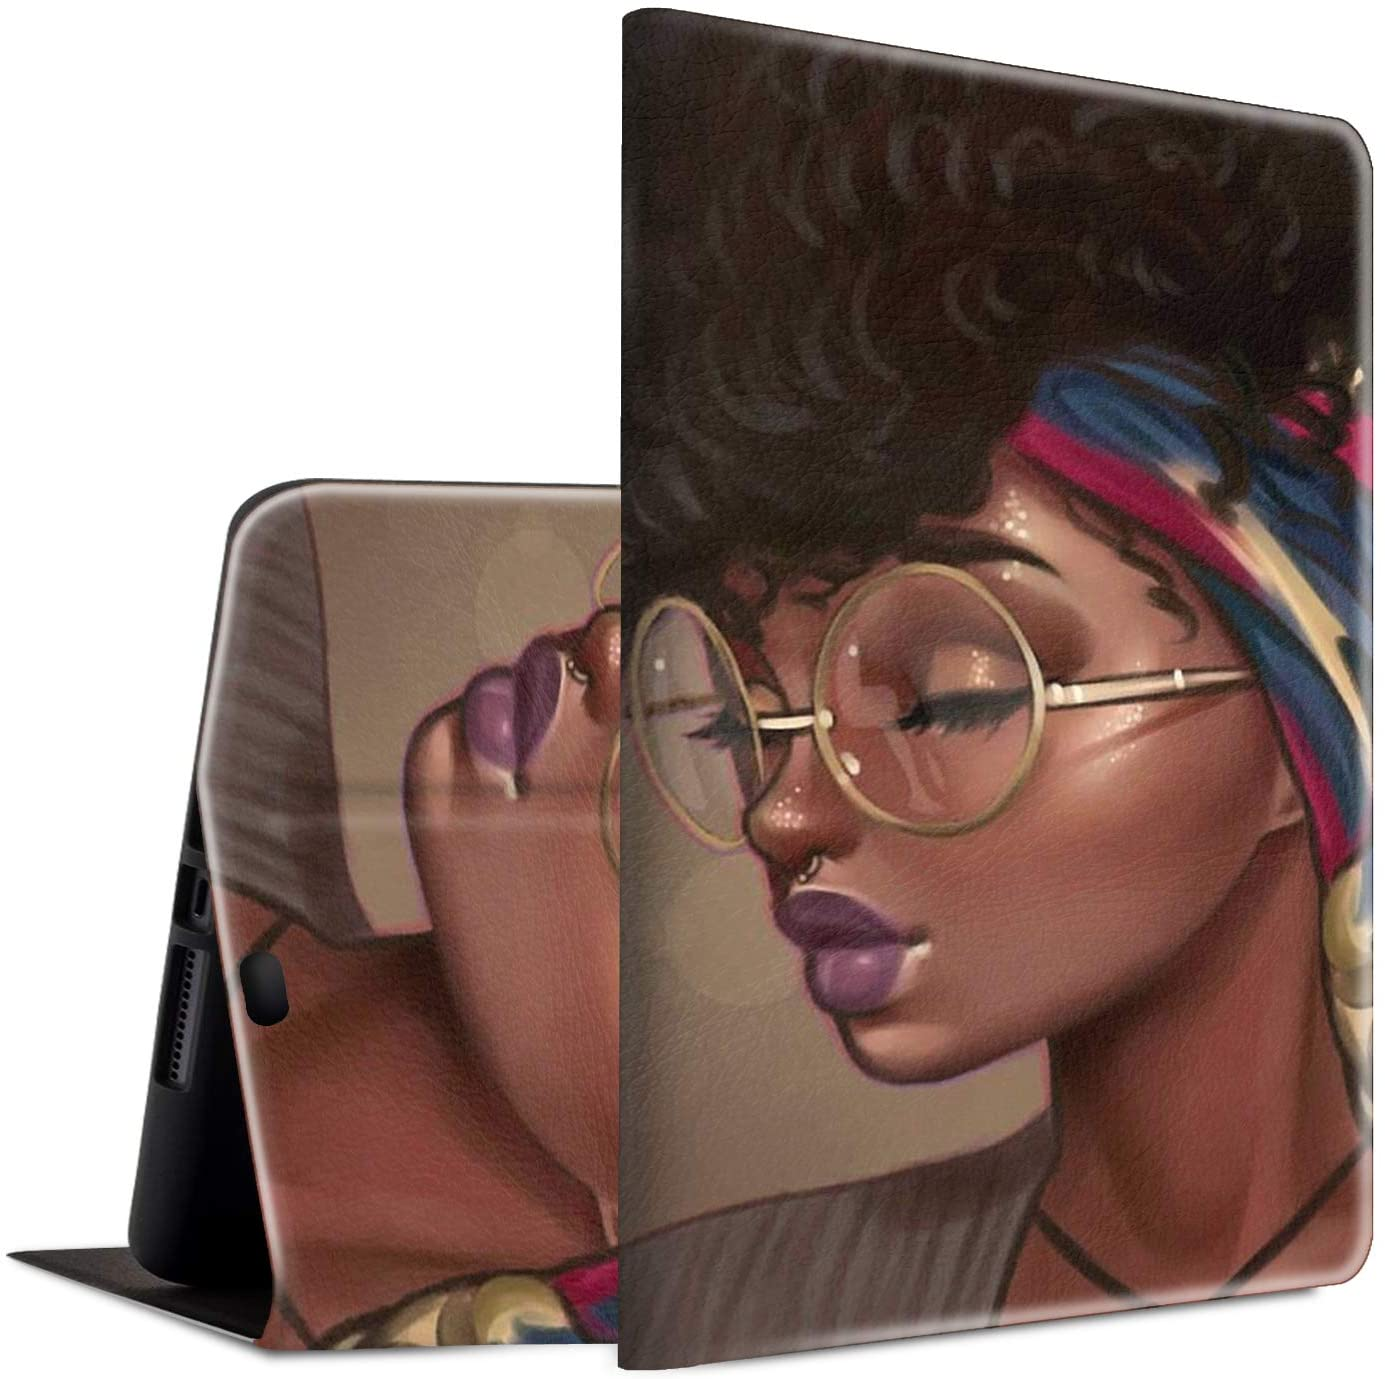 iPad Pro 11 Case 2018, Spsun Lightweight PU Leather Folio Cover Adjustable Stand with Auto Wake/Sleep Smart Protect Case for Apple iPad Pro 11 (2018 Release) - Afro Hair Black Girl